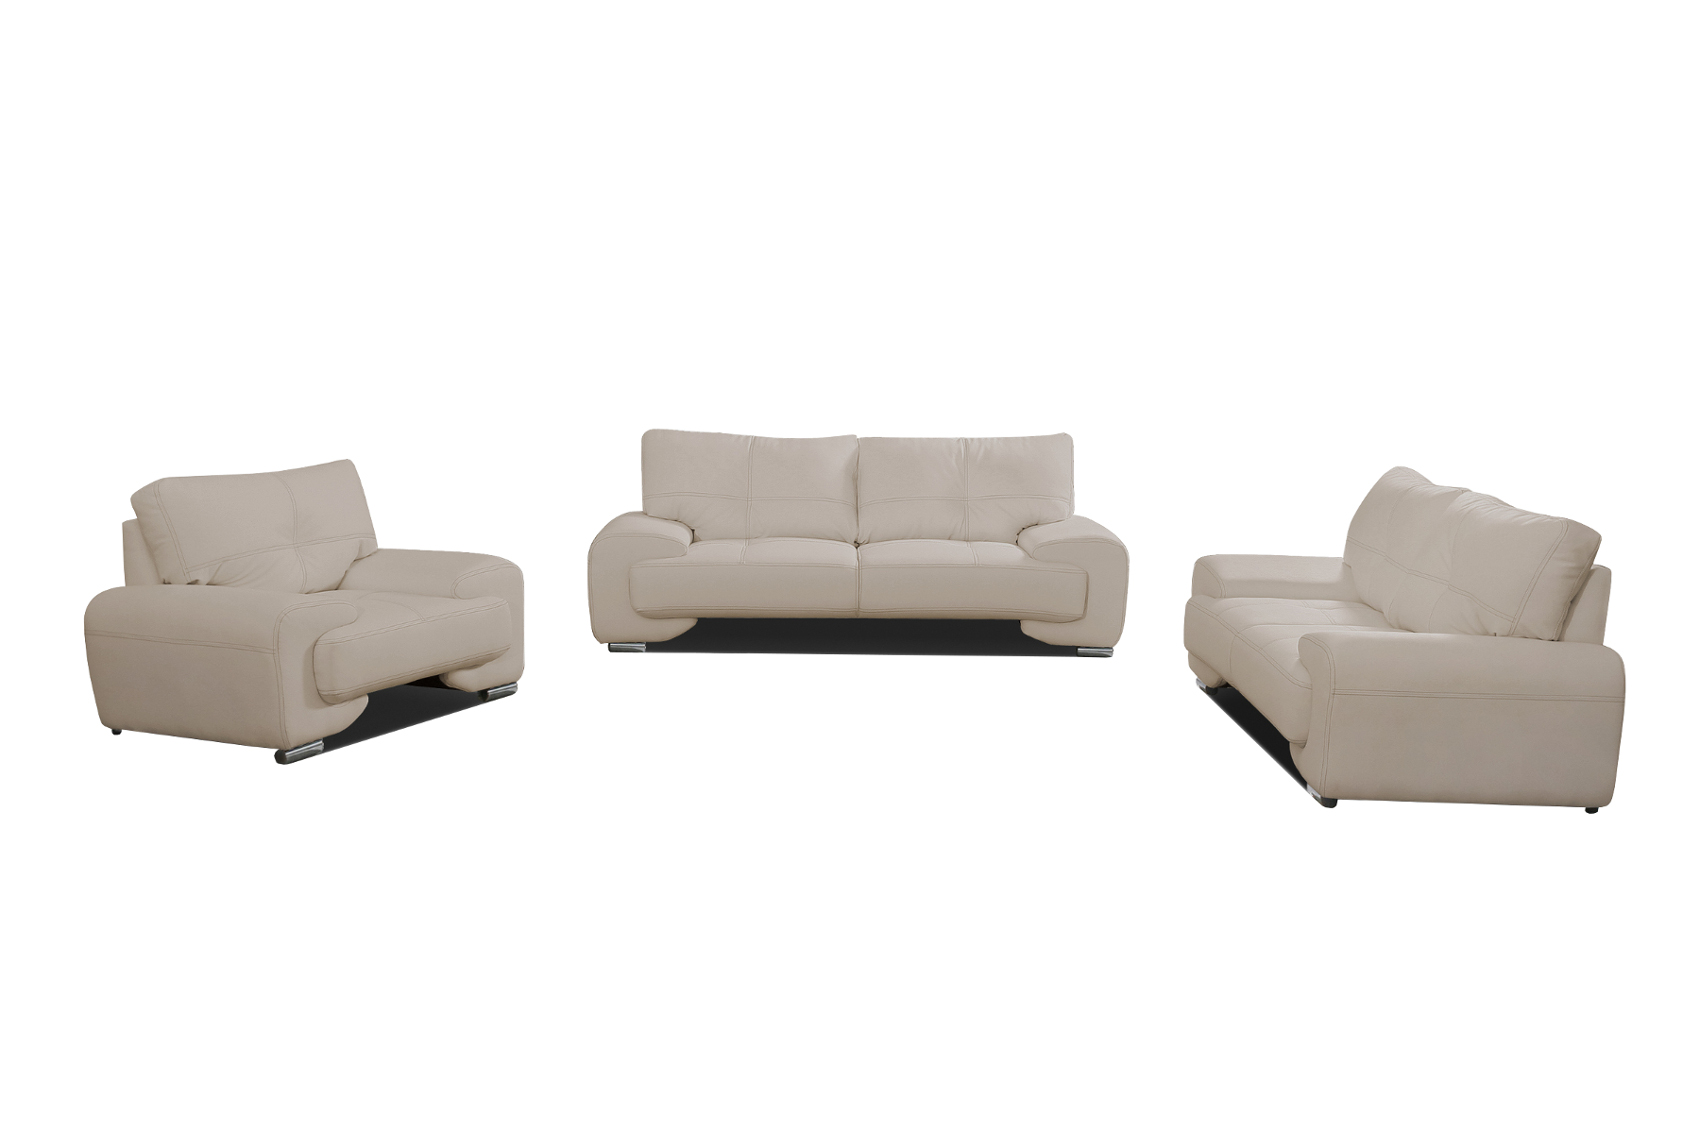 Couch 3er 2er Sessel Sofa Set Sofagarnitur Couch 3er 2er And Sessel 3 2 1